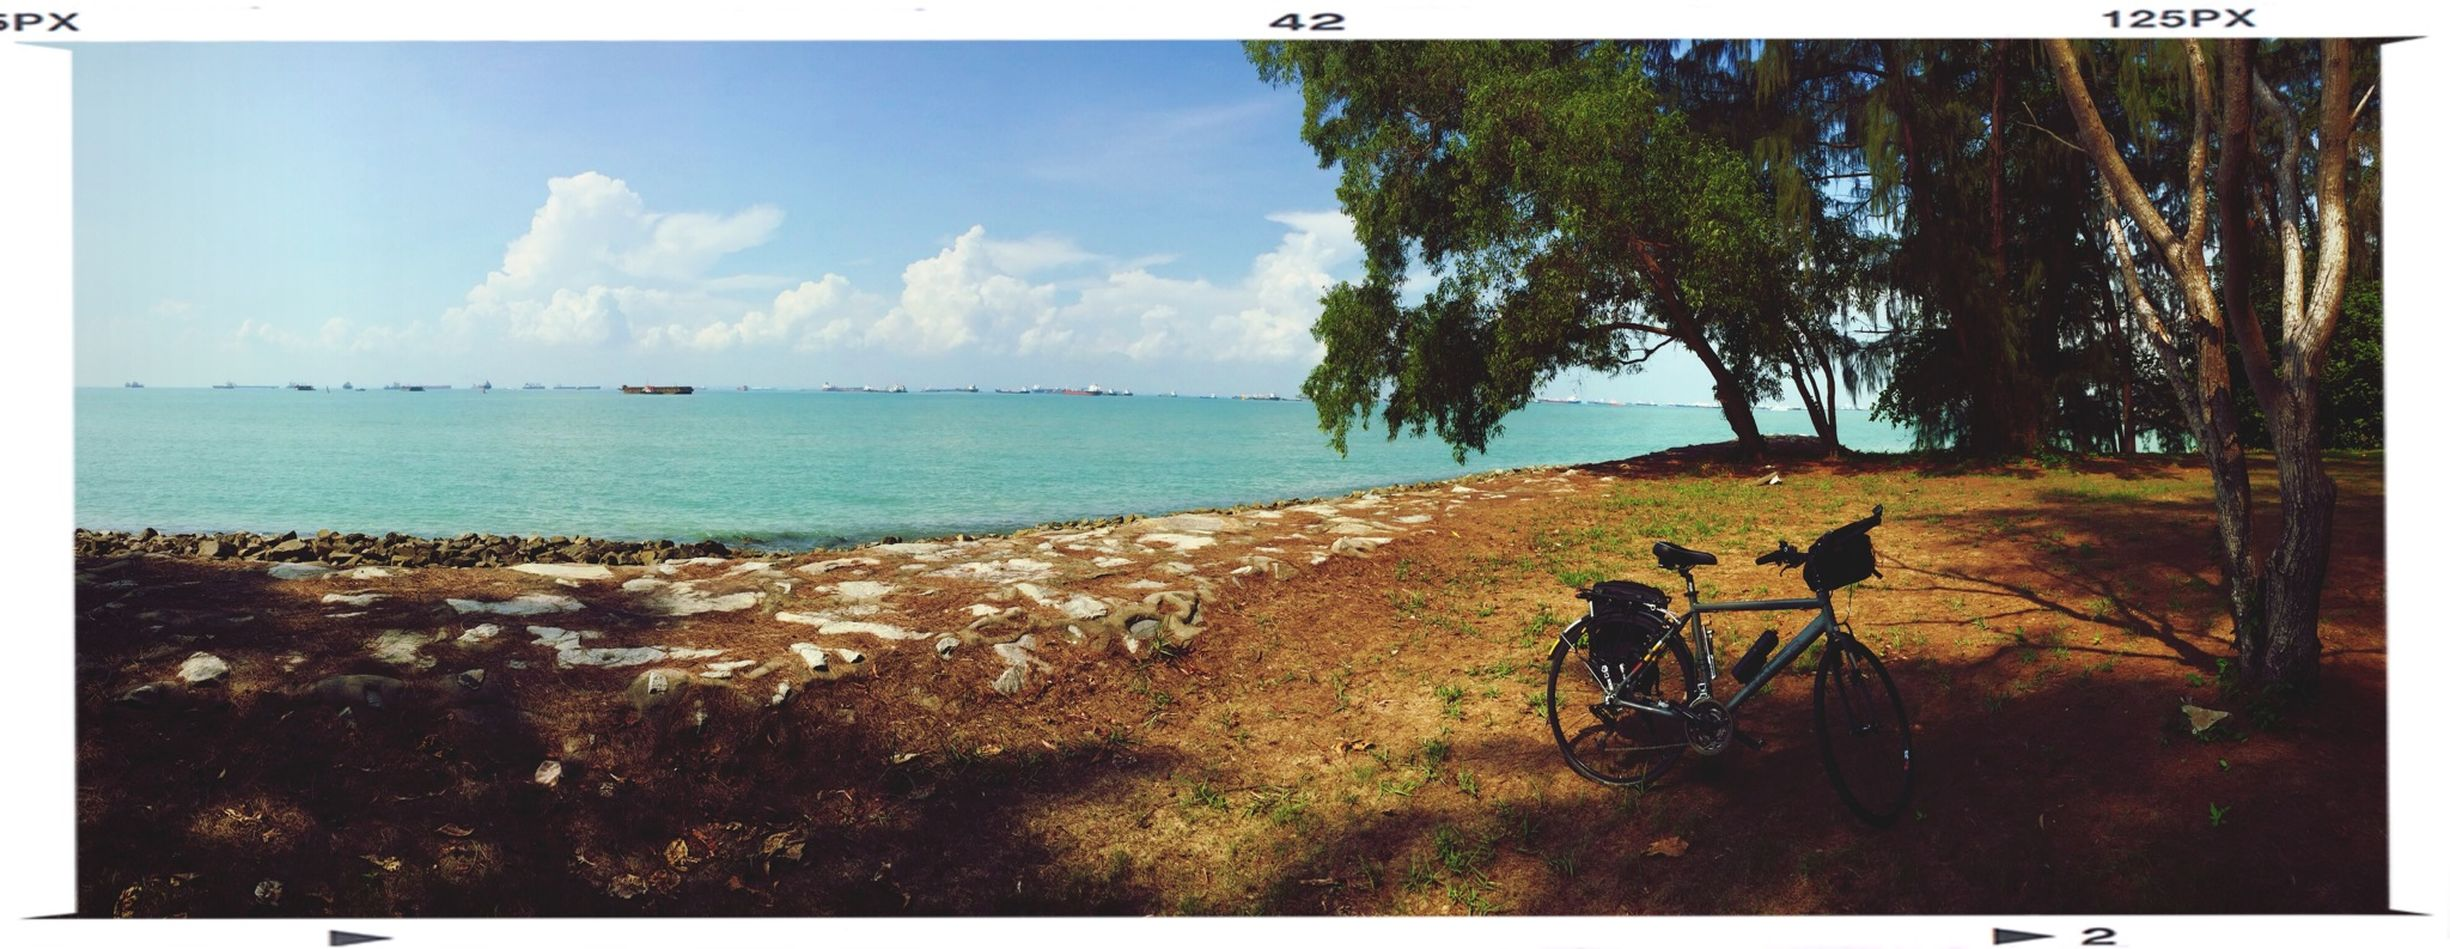 Cycling day.